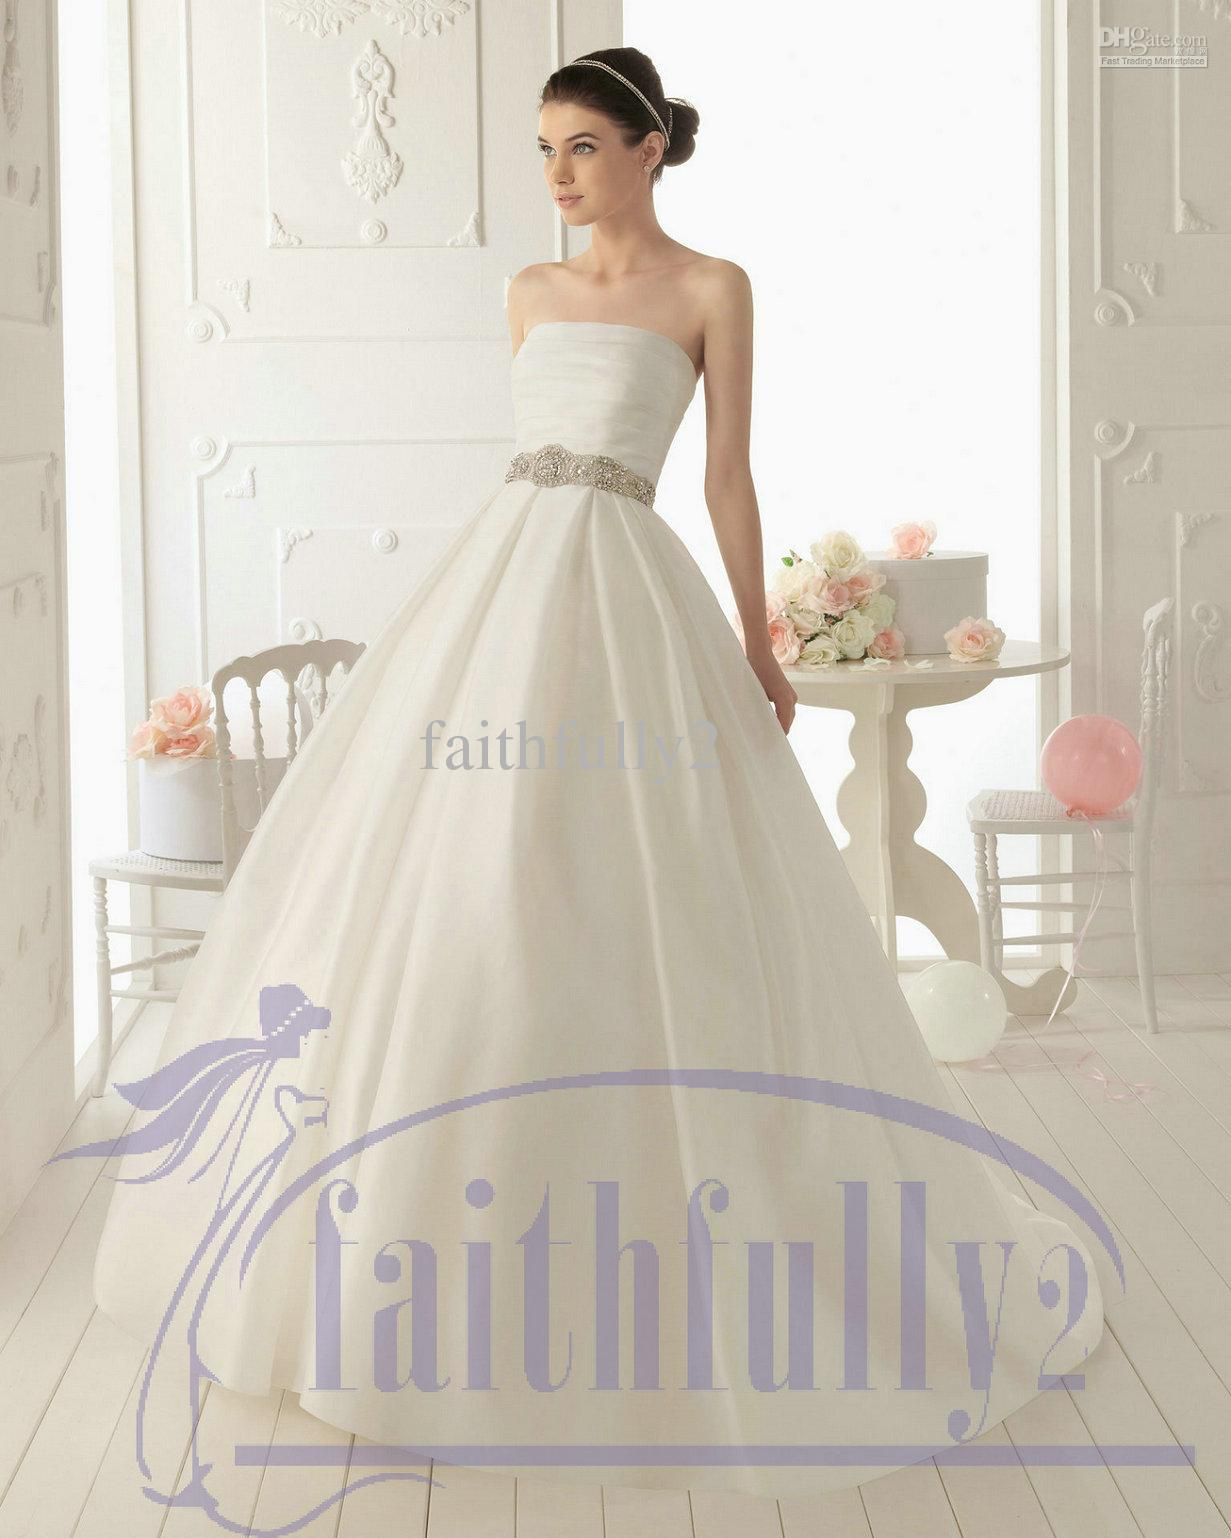 Simple wedding dresses cheap  Pin by Tatyana Gontscharow on One of these days  Pinterest